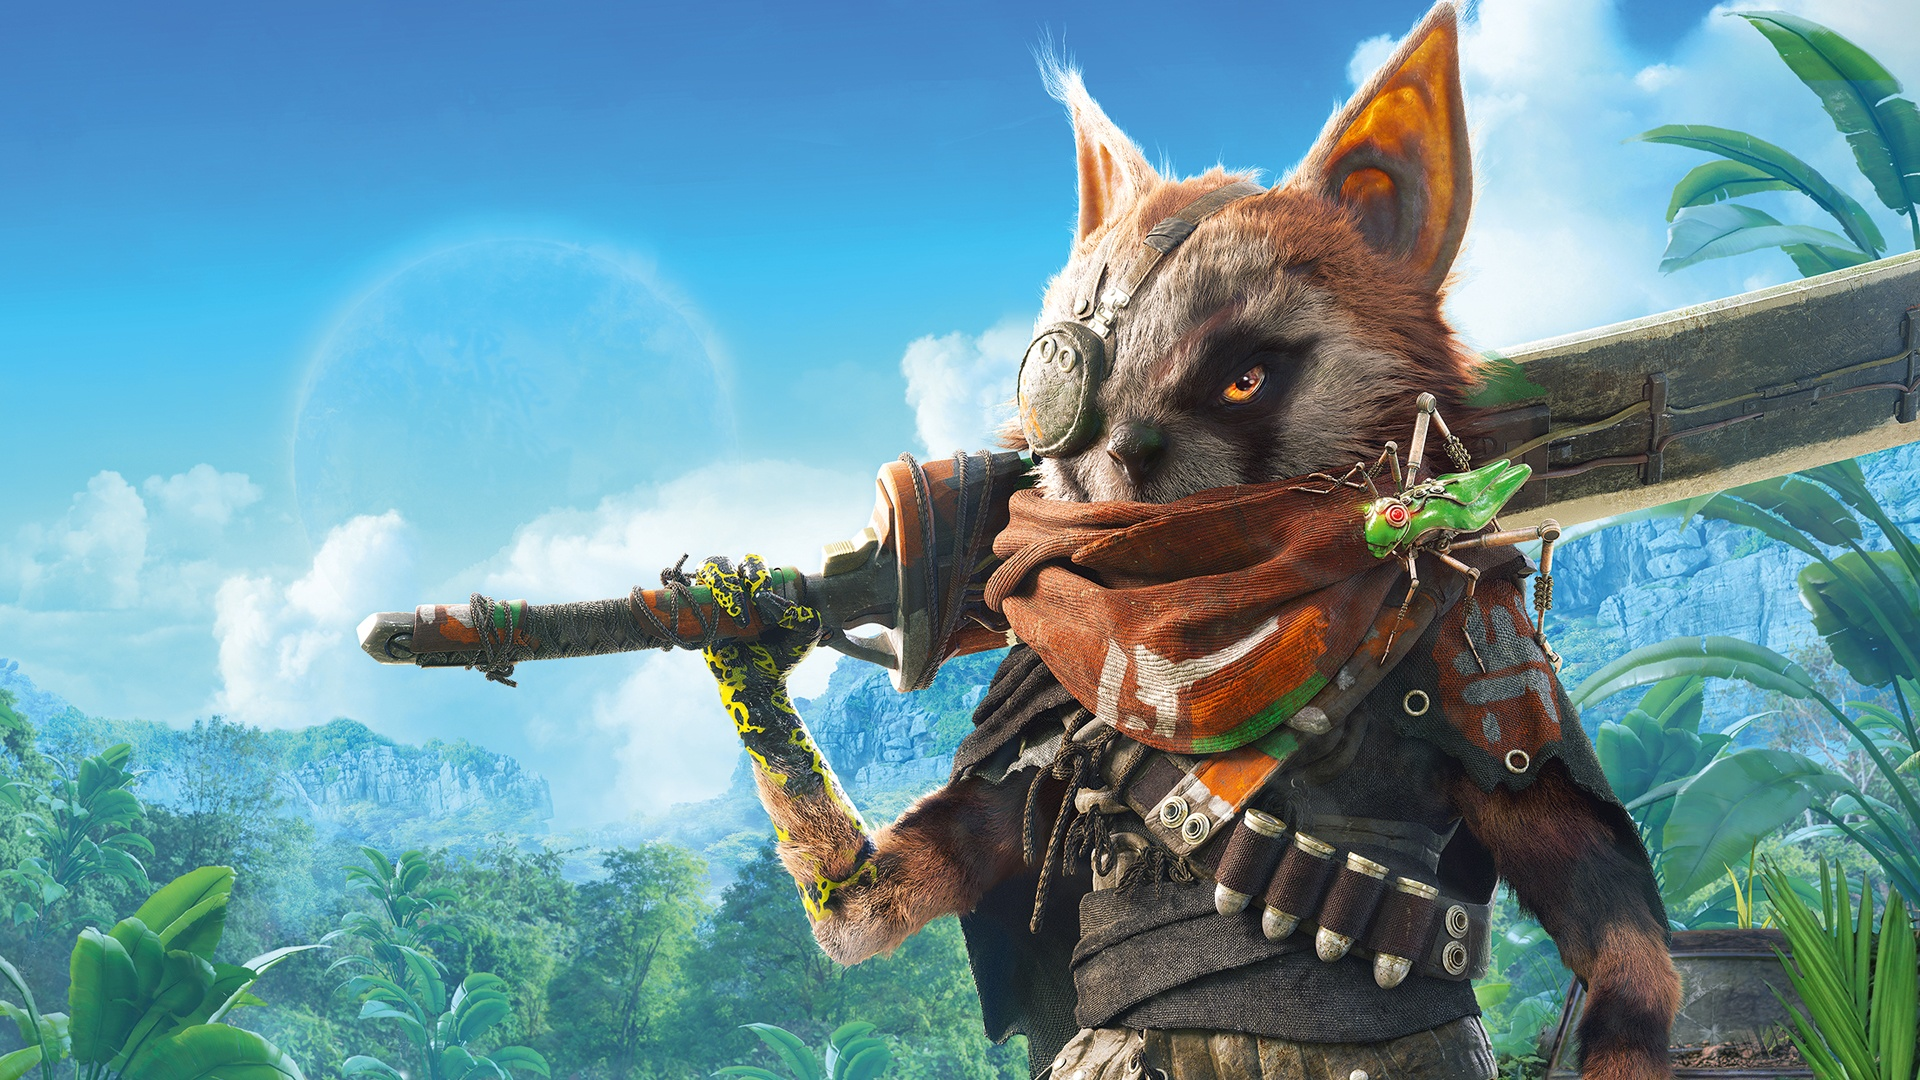 biomutant open world rpg mit kung fu setting f r ps4. Black Bedroom Furniture Sets. Home Design Ideas